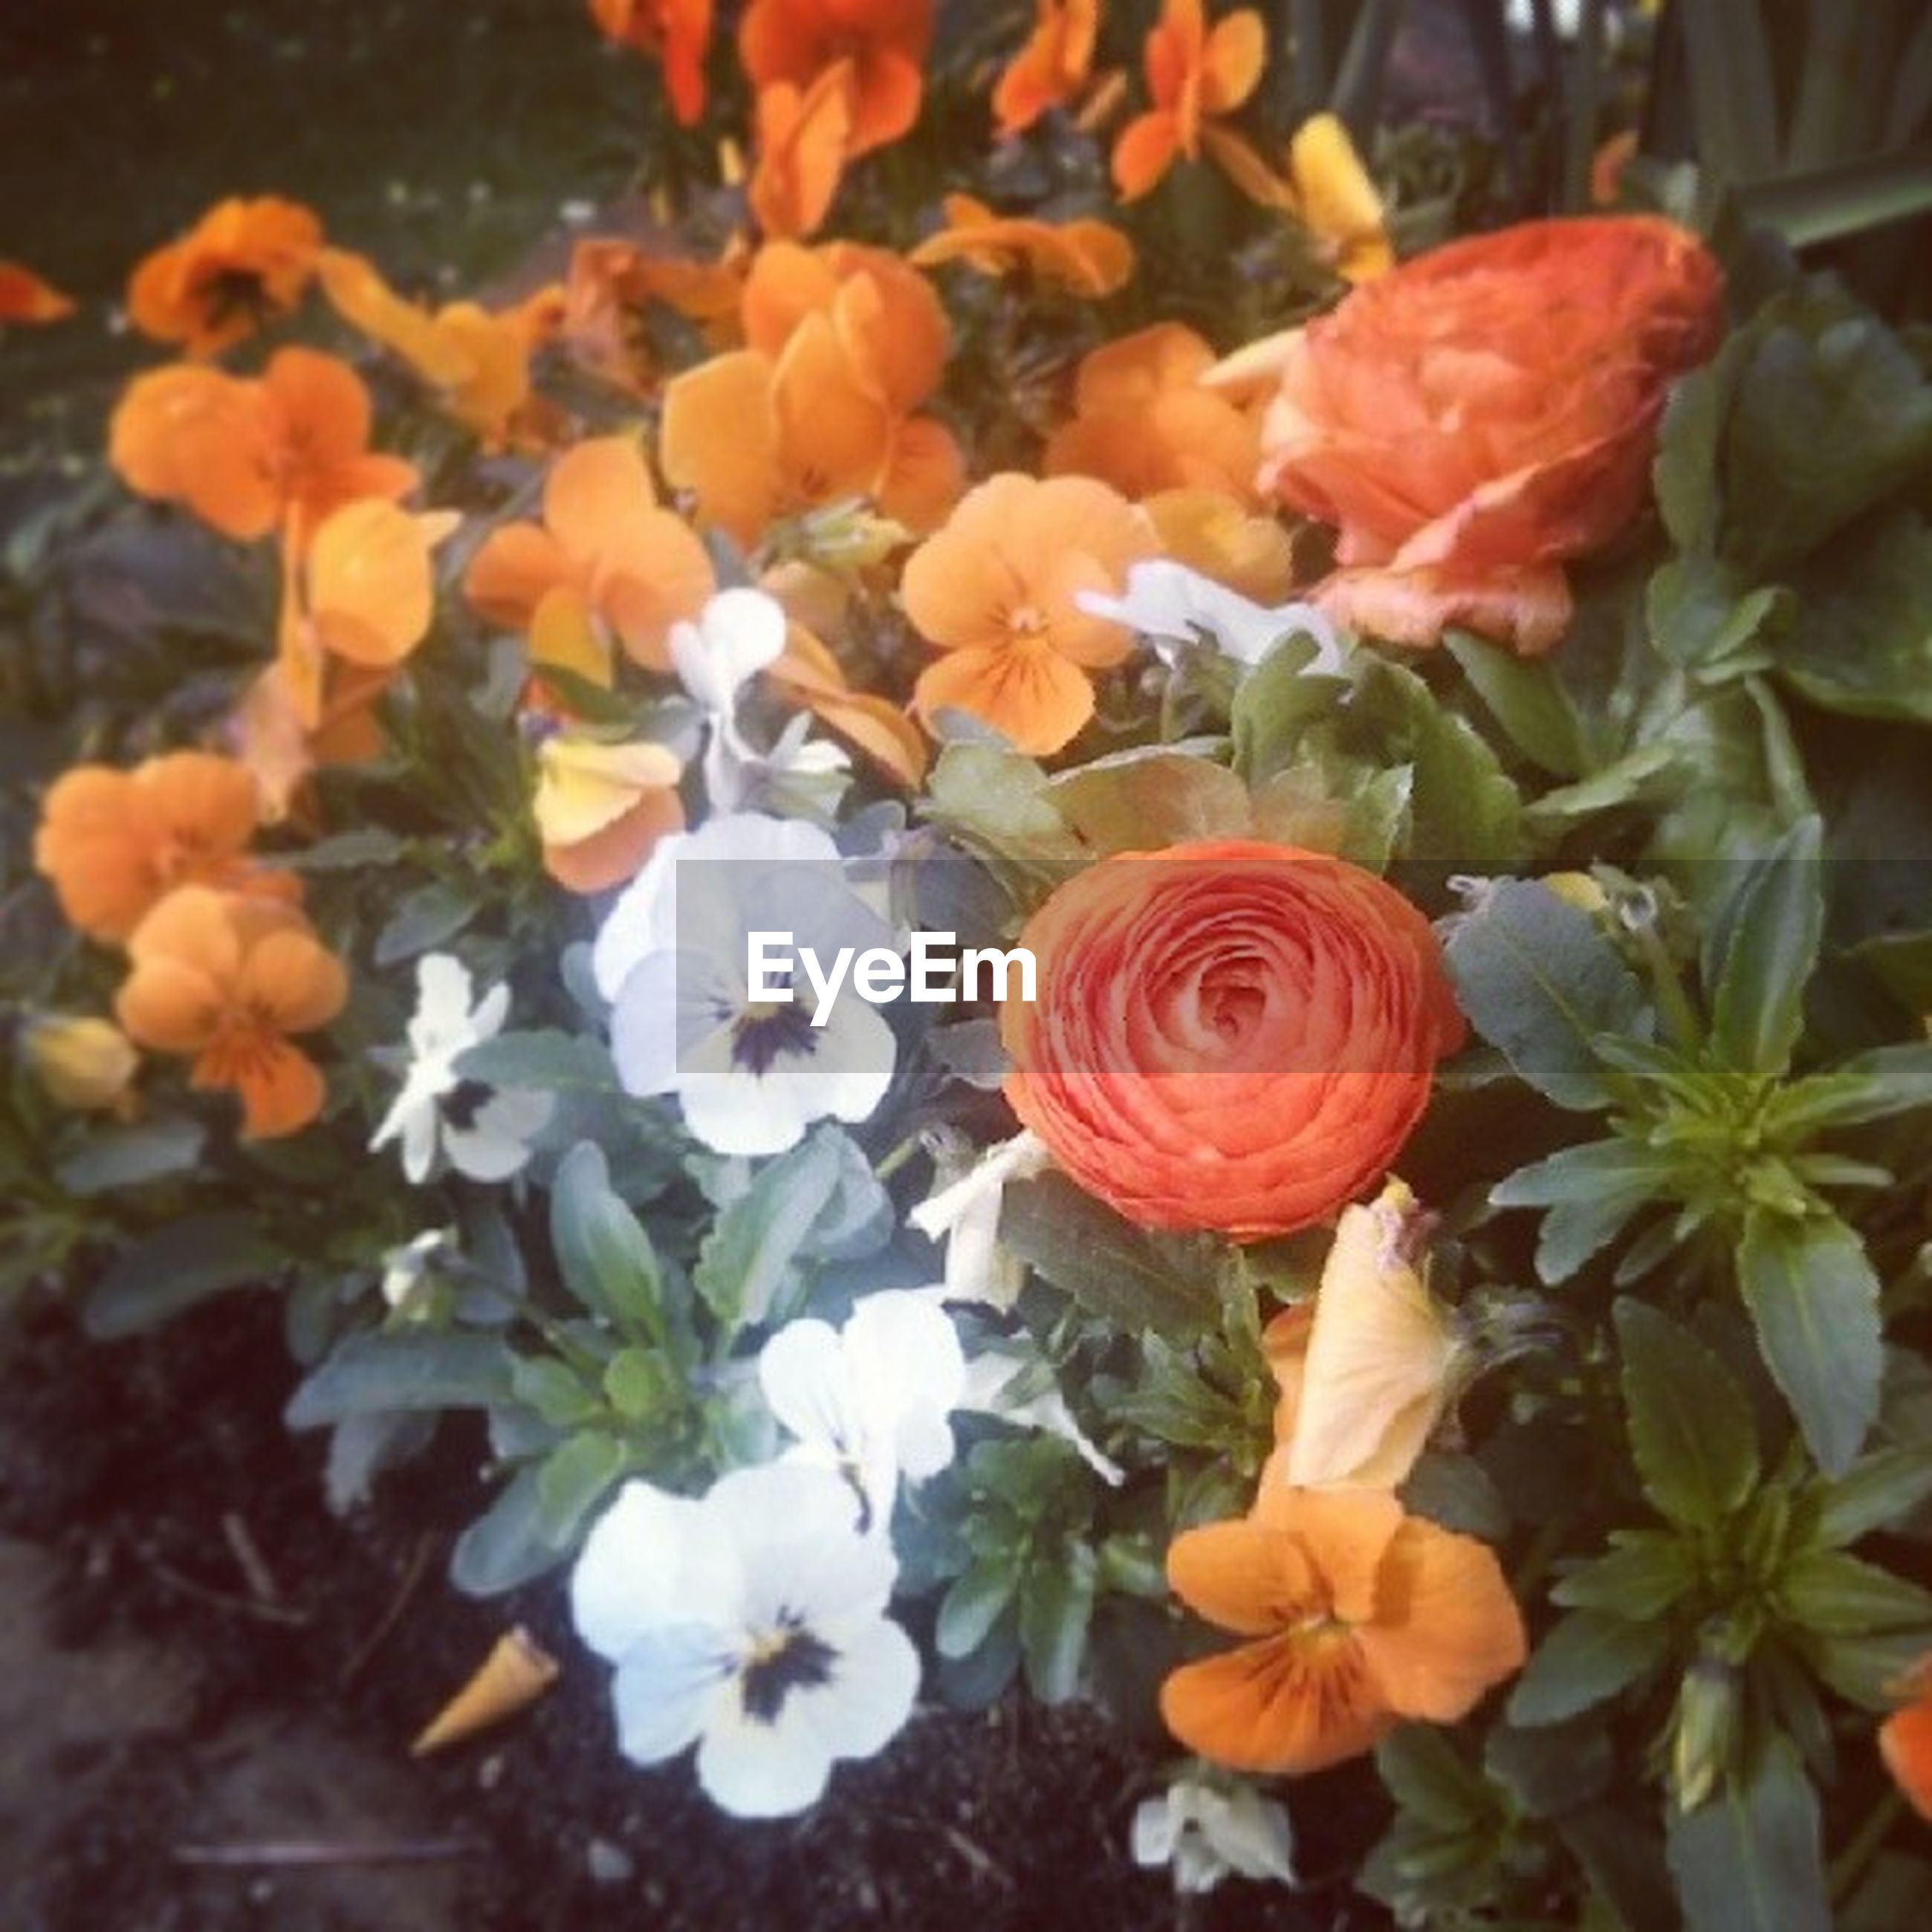 flower, petal, freshness, fragility, flower head, beauty in nature, growth, blooming, plant, nature, close-up, rose - flower, red, leaf, in bloom, focus on foreground, high angle view, tulip, blossom, orange color